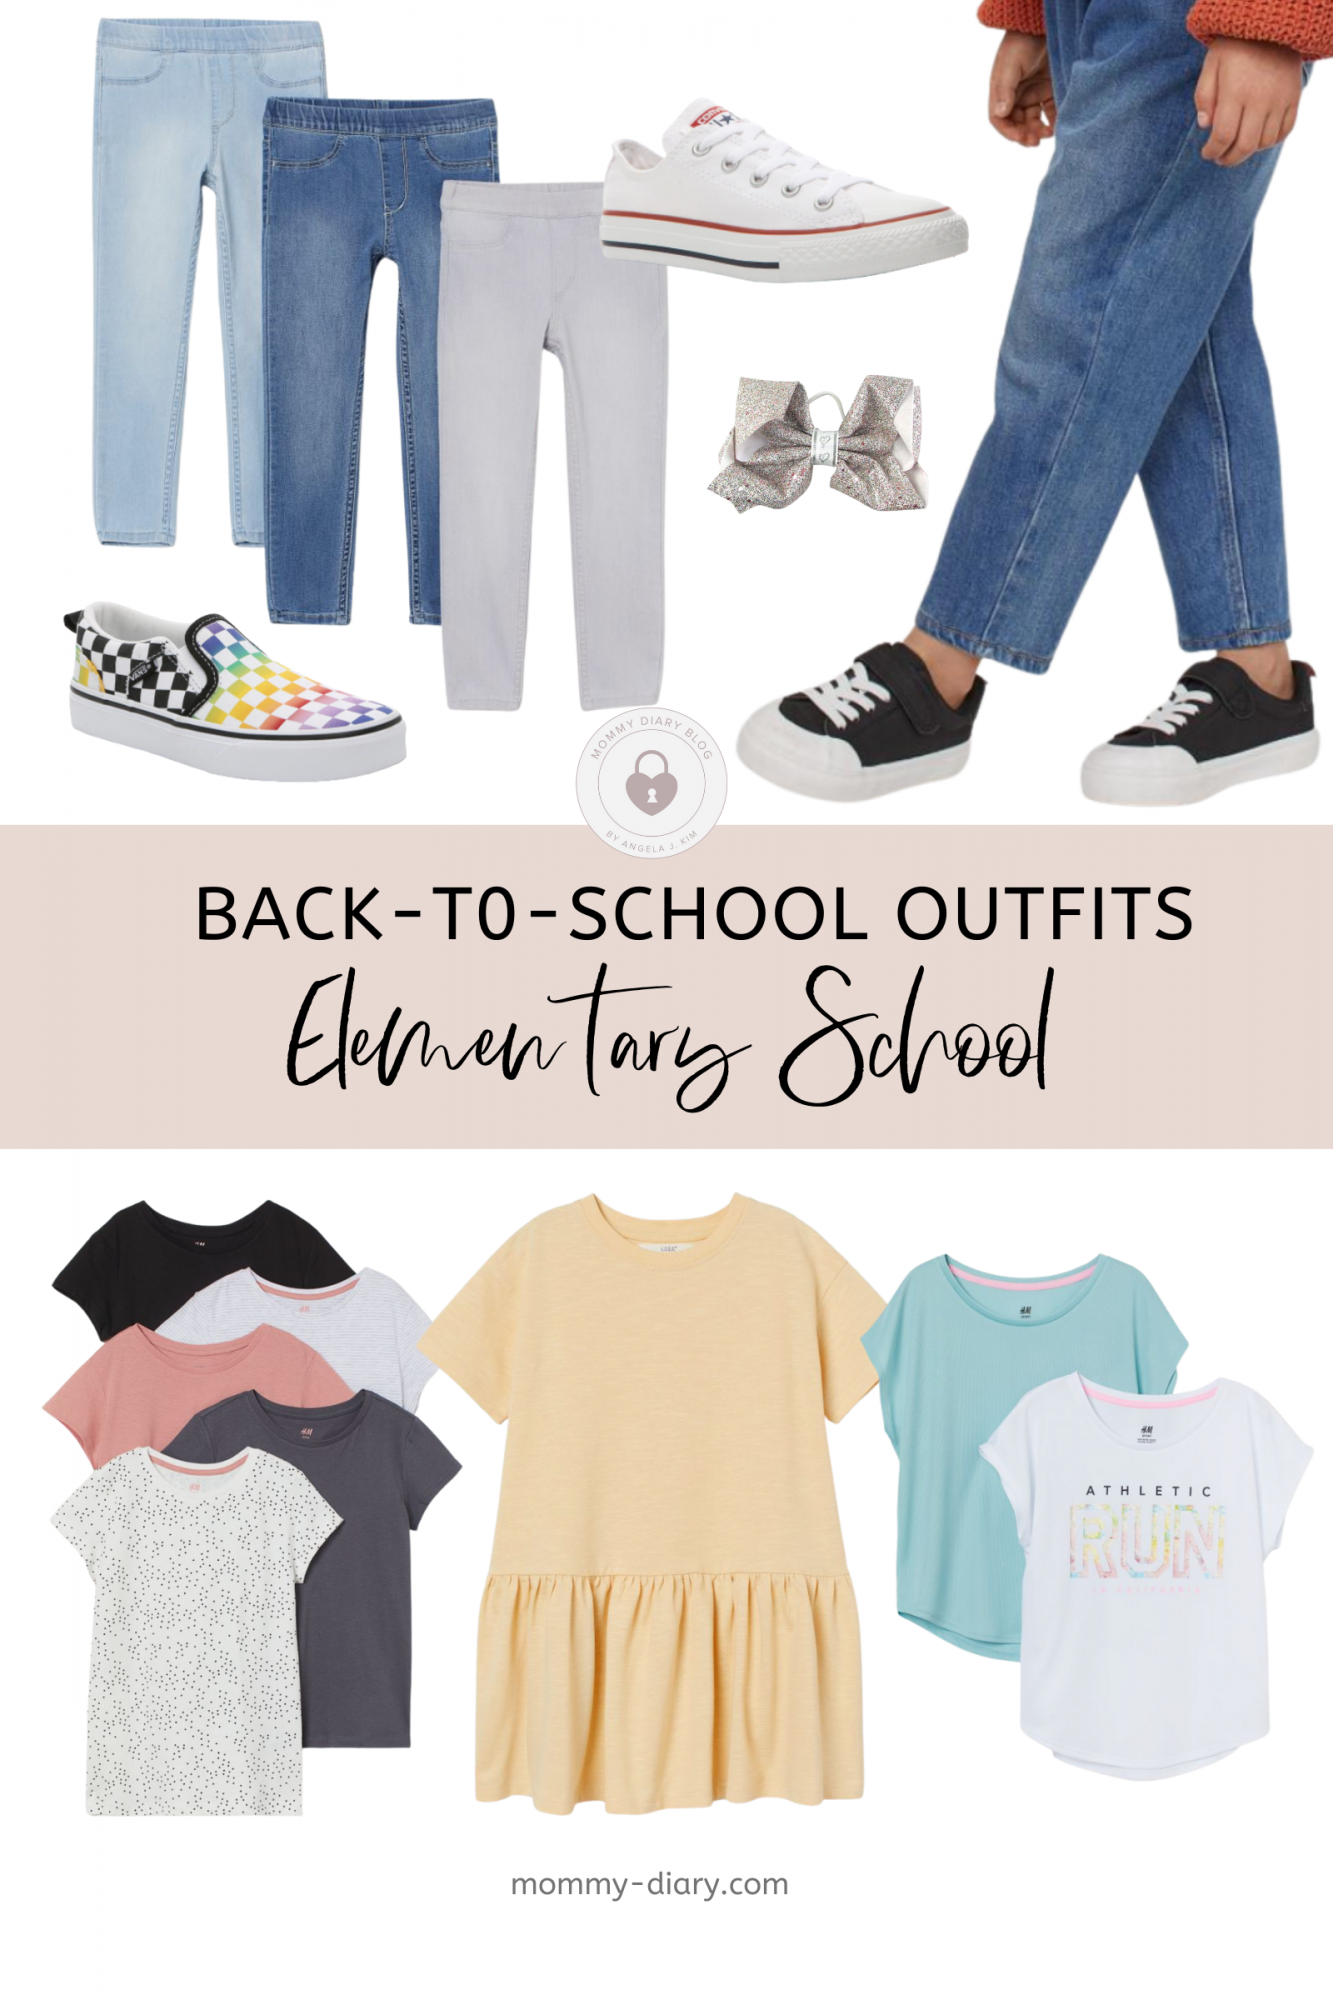 Back-to-School Elementary School Outfits